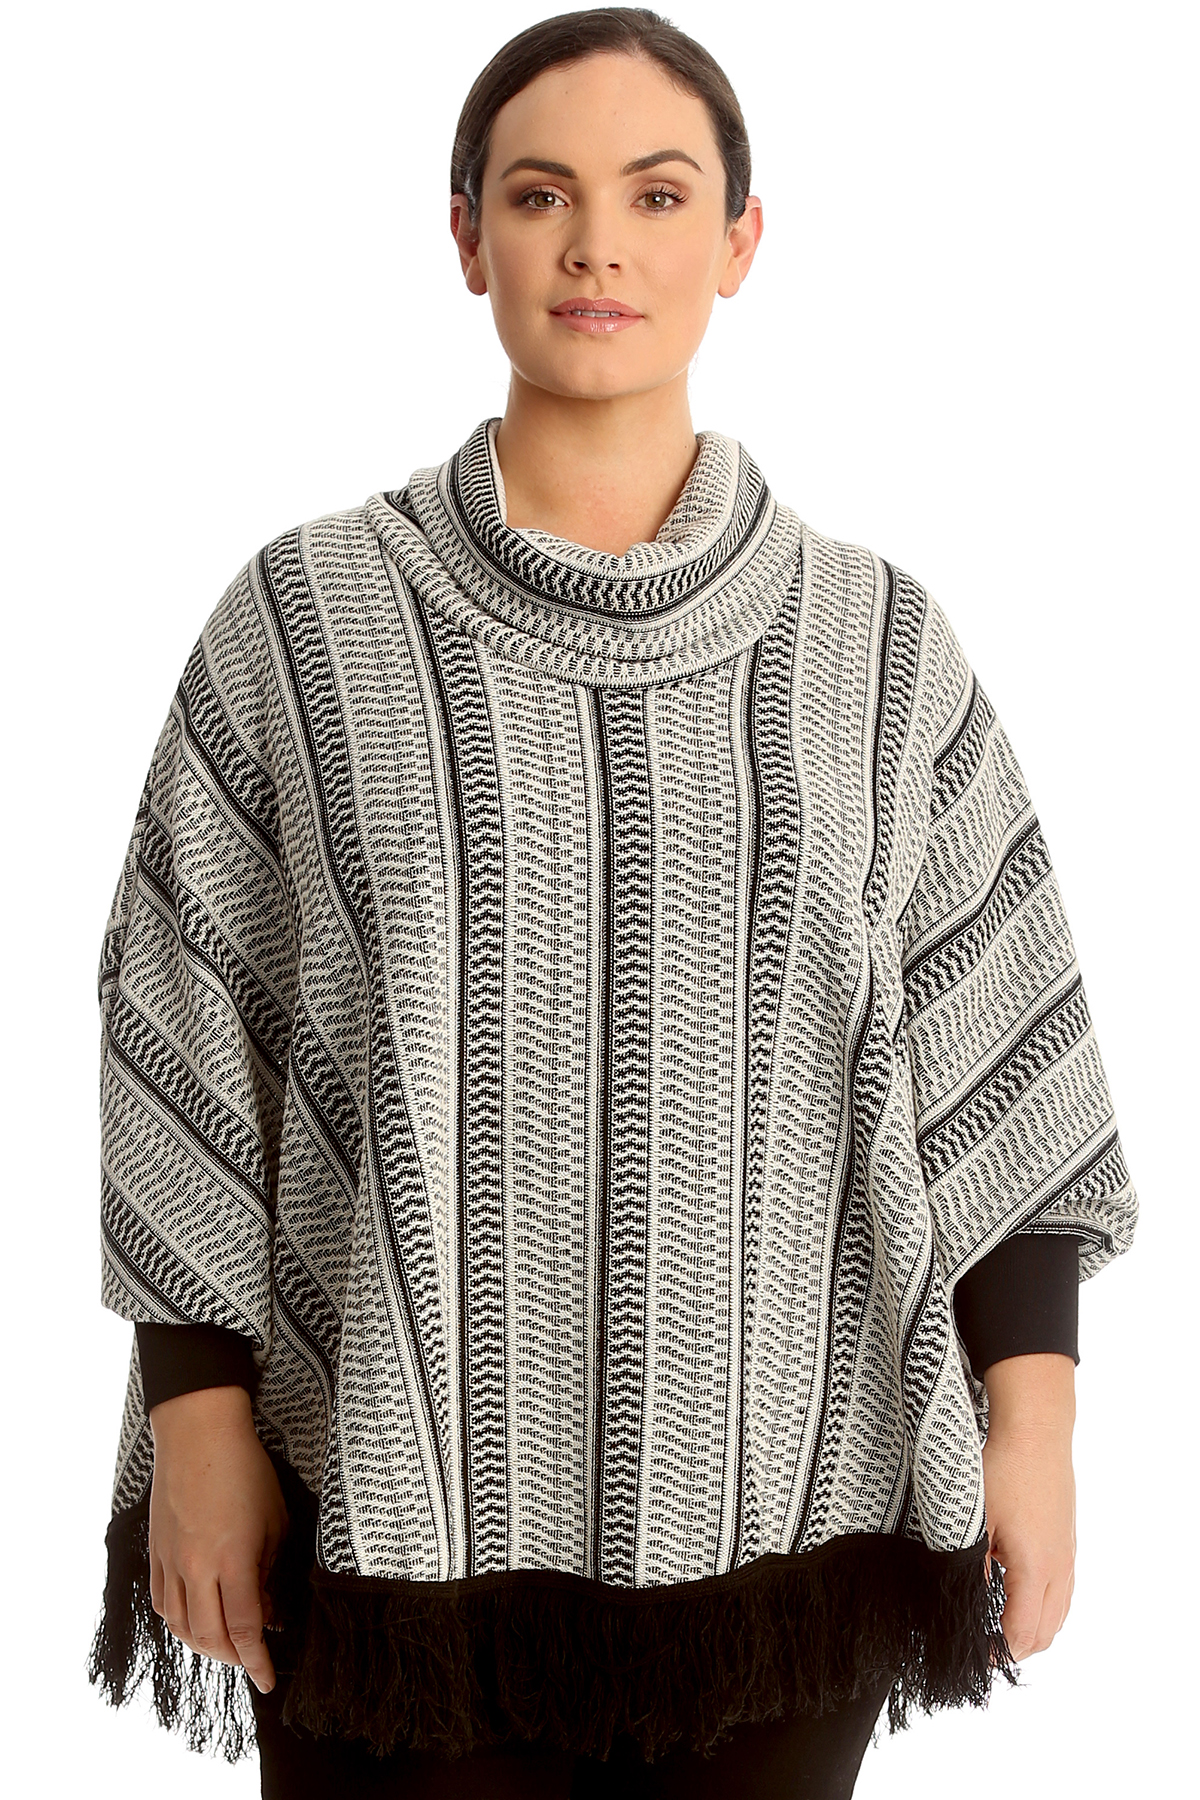 c45f3f516a7 Details about New Womens Plus Size Poncho Ladies Textured Cowl Neck Ribbed  Top Frill Hem Warm